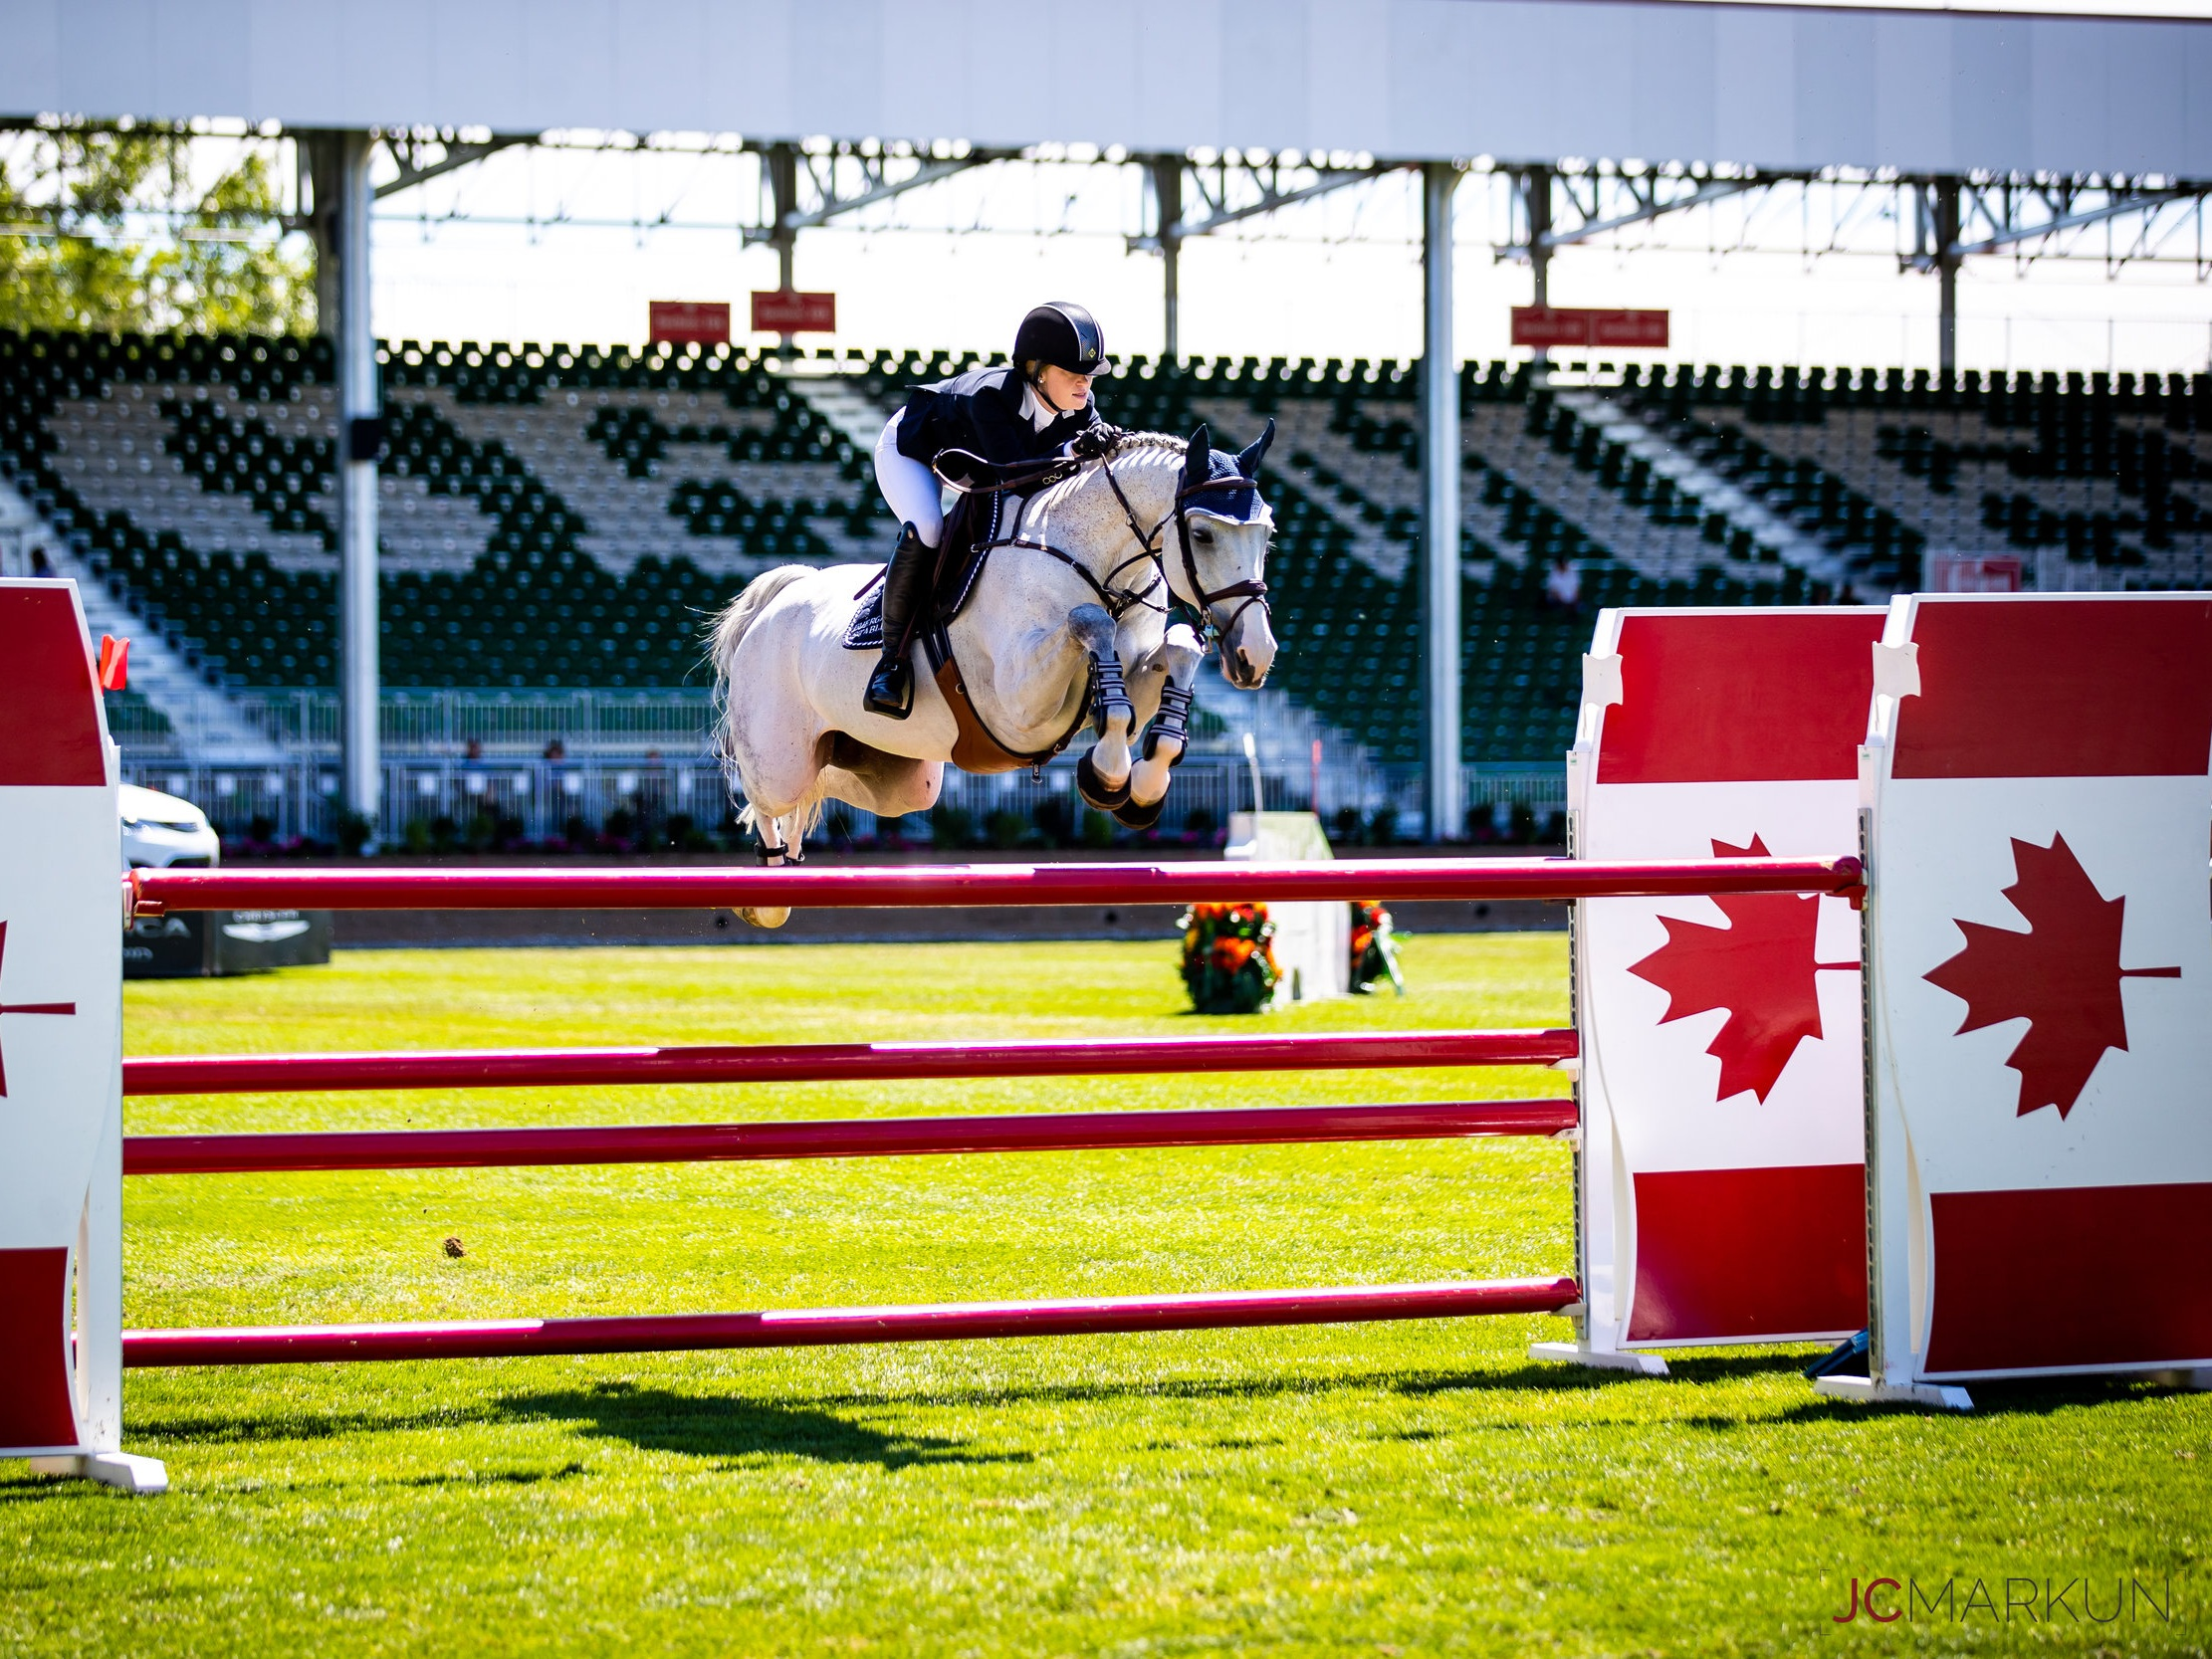 Jenn Gates and Pumped Up Kicks at Spruce Meadows CSI 5* by Rolex 2019. Photo by JC Markun.